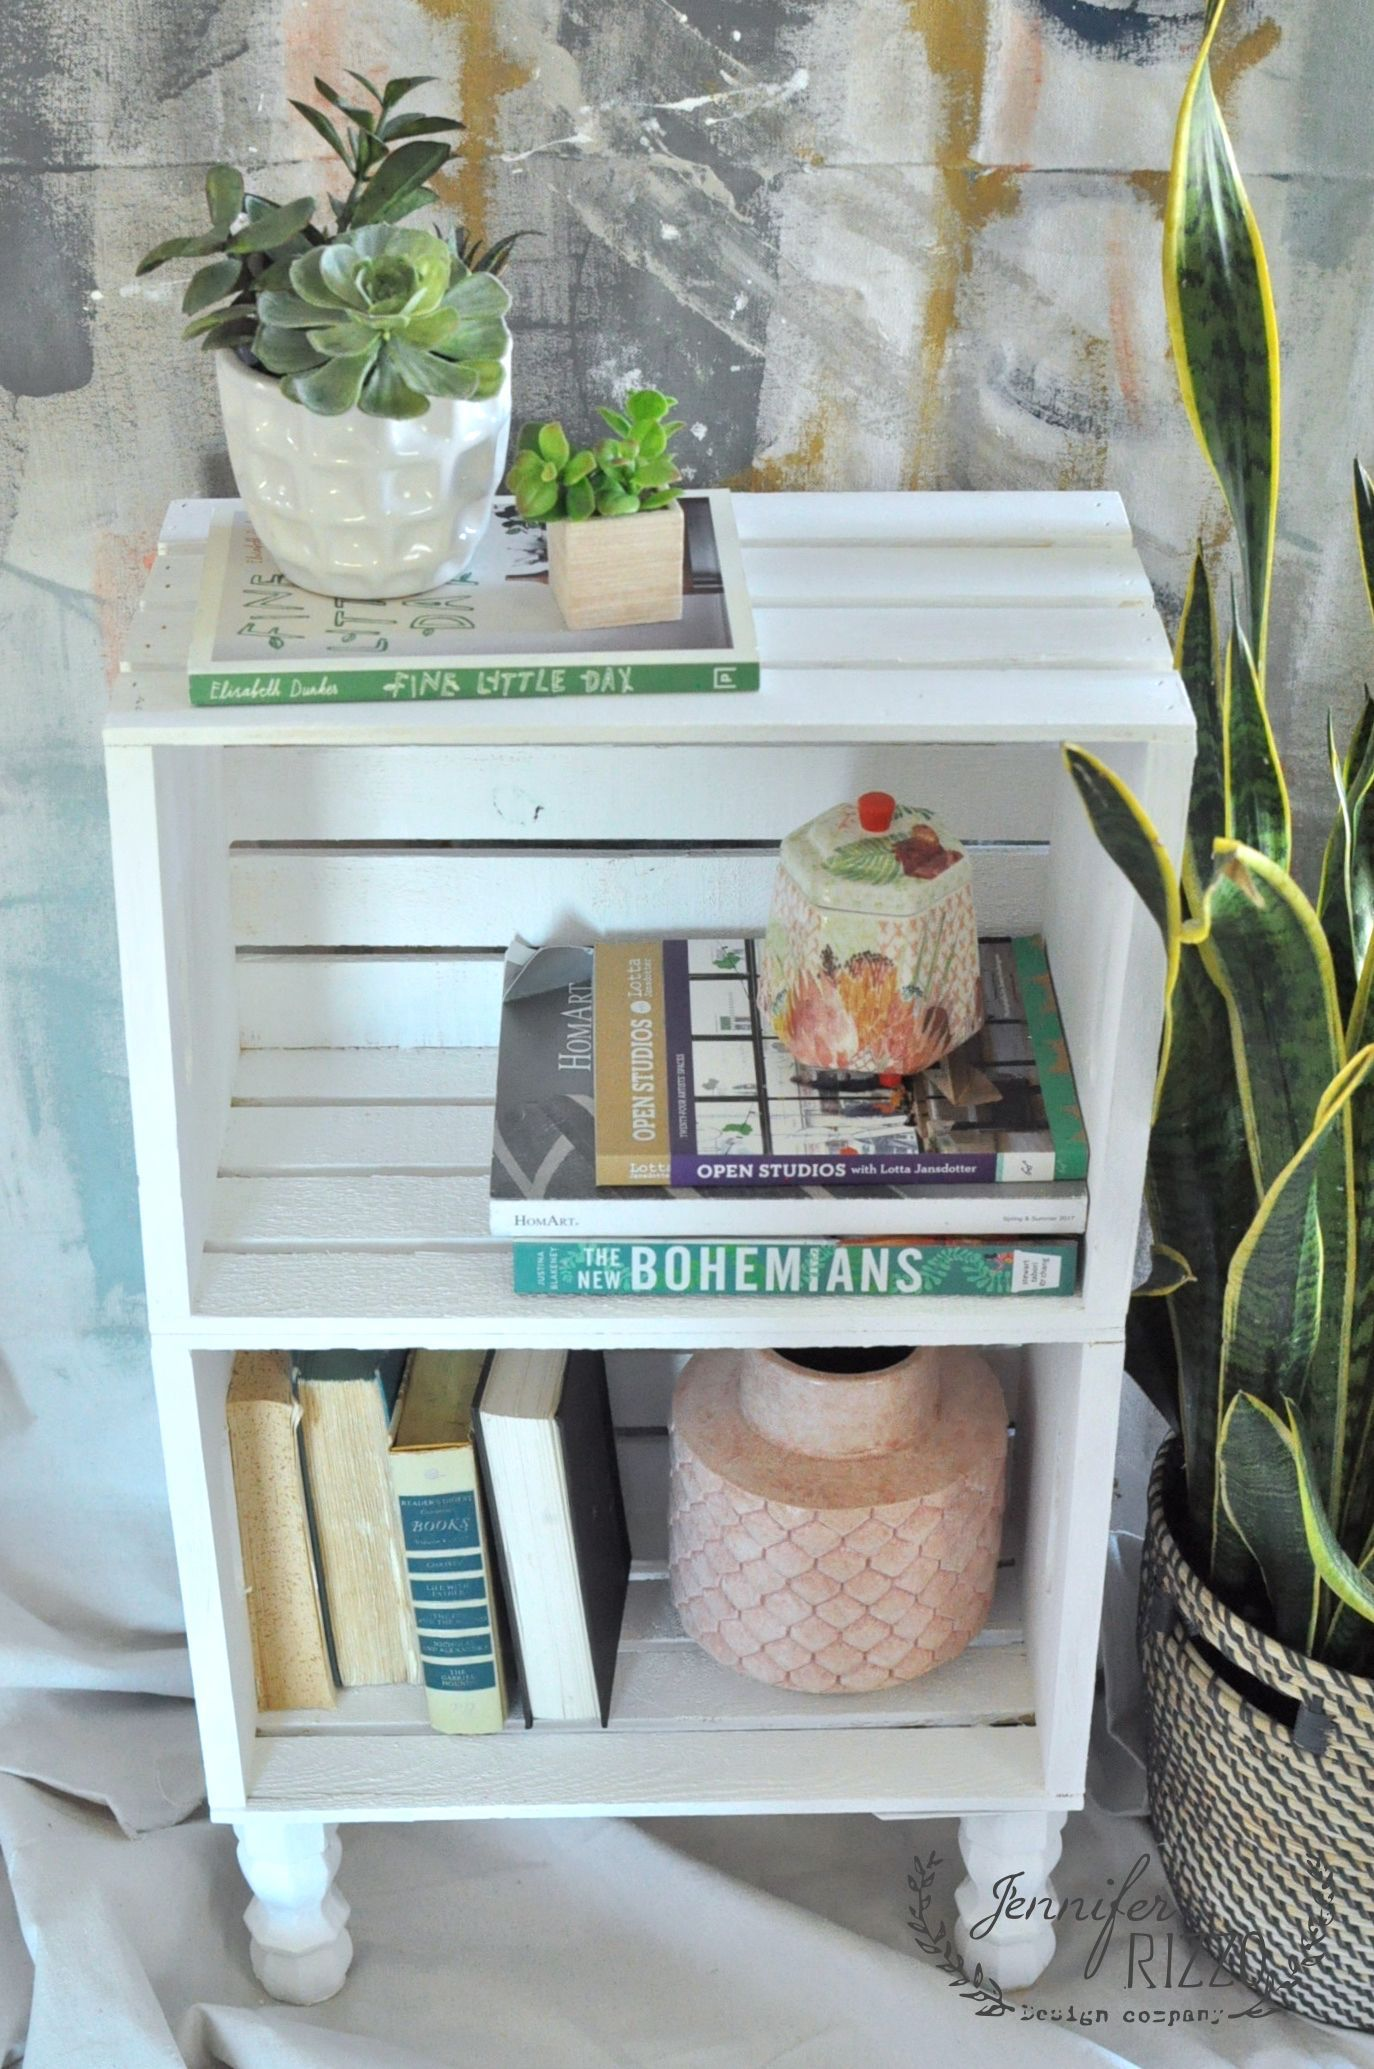 Beau I Love This Idea Of Using Craft Store Crates To Make A Fast And Inexpensive  Side Table Or Book Case!